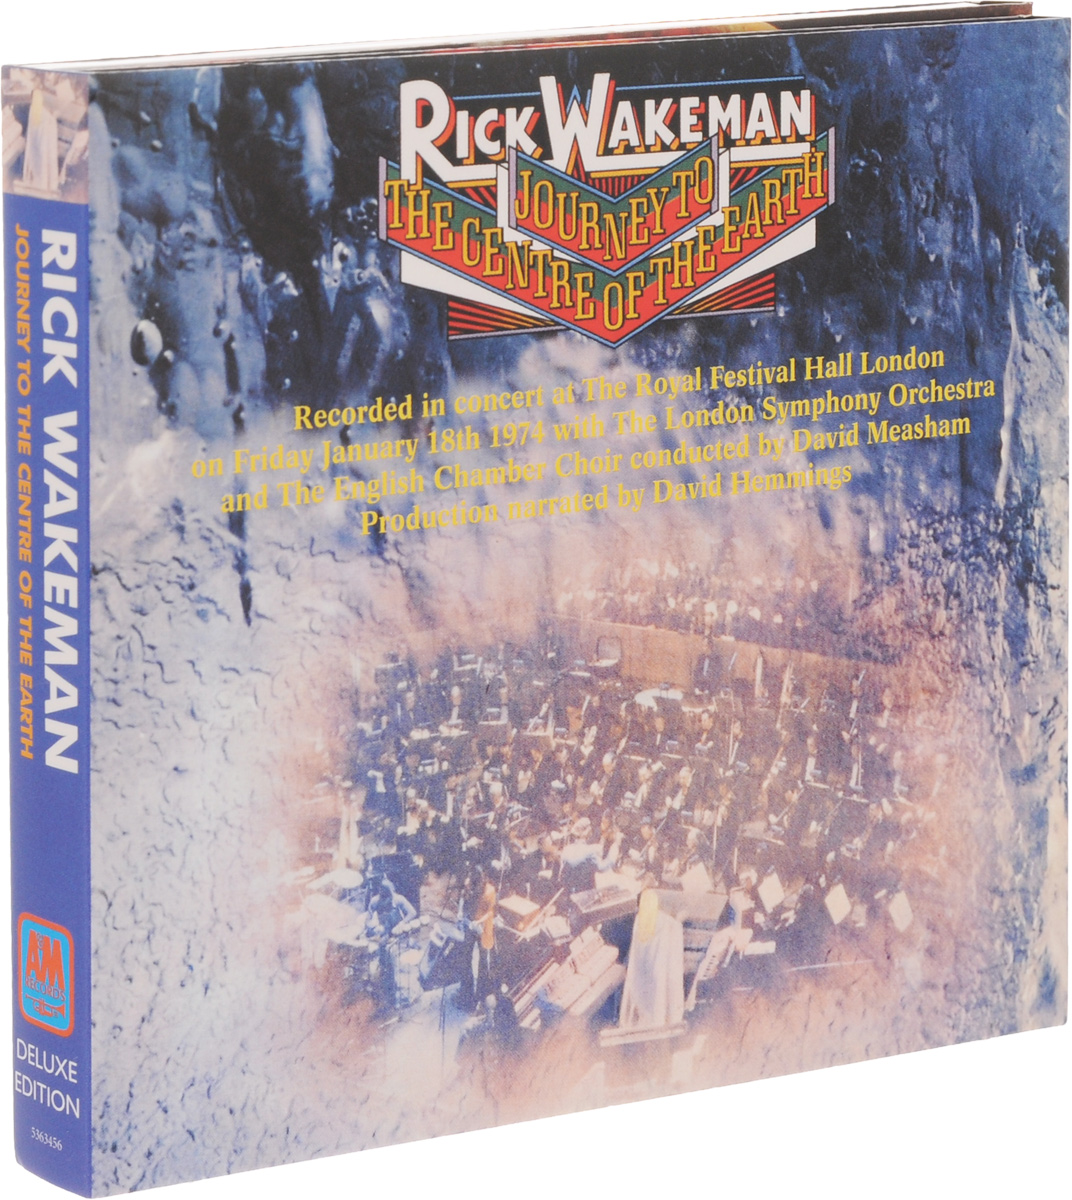 Фото - Рик Уэйкман Rick Wakeman. Journey To The Centre Of The Eart. Deluxe Edition (CD + DVD) cd led zeppelin ii deluxe edition